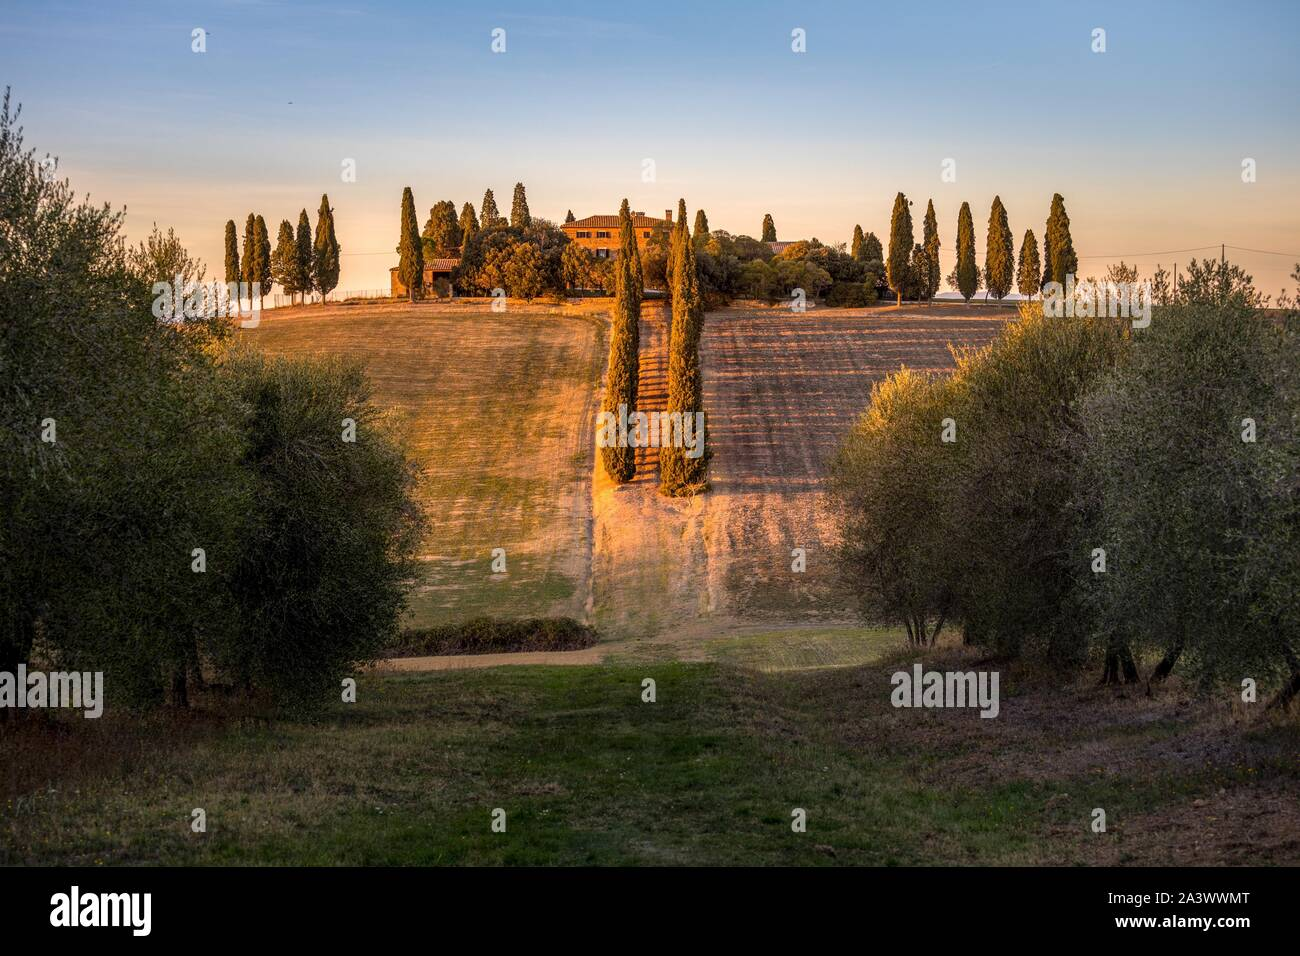 CYPRESS AND OLIVE TREE-LINED ROAD LEADING TO A FARM, SIENA, TUSCANY, ITALY Stock Photo